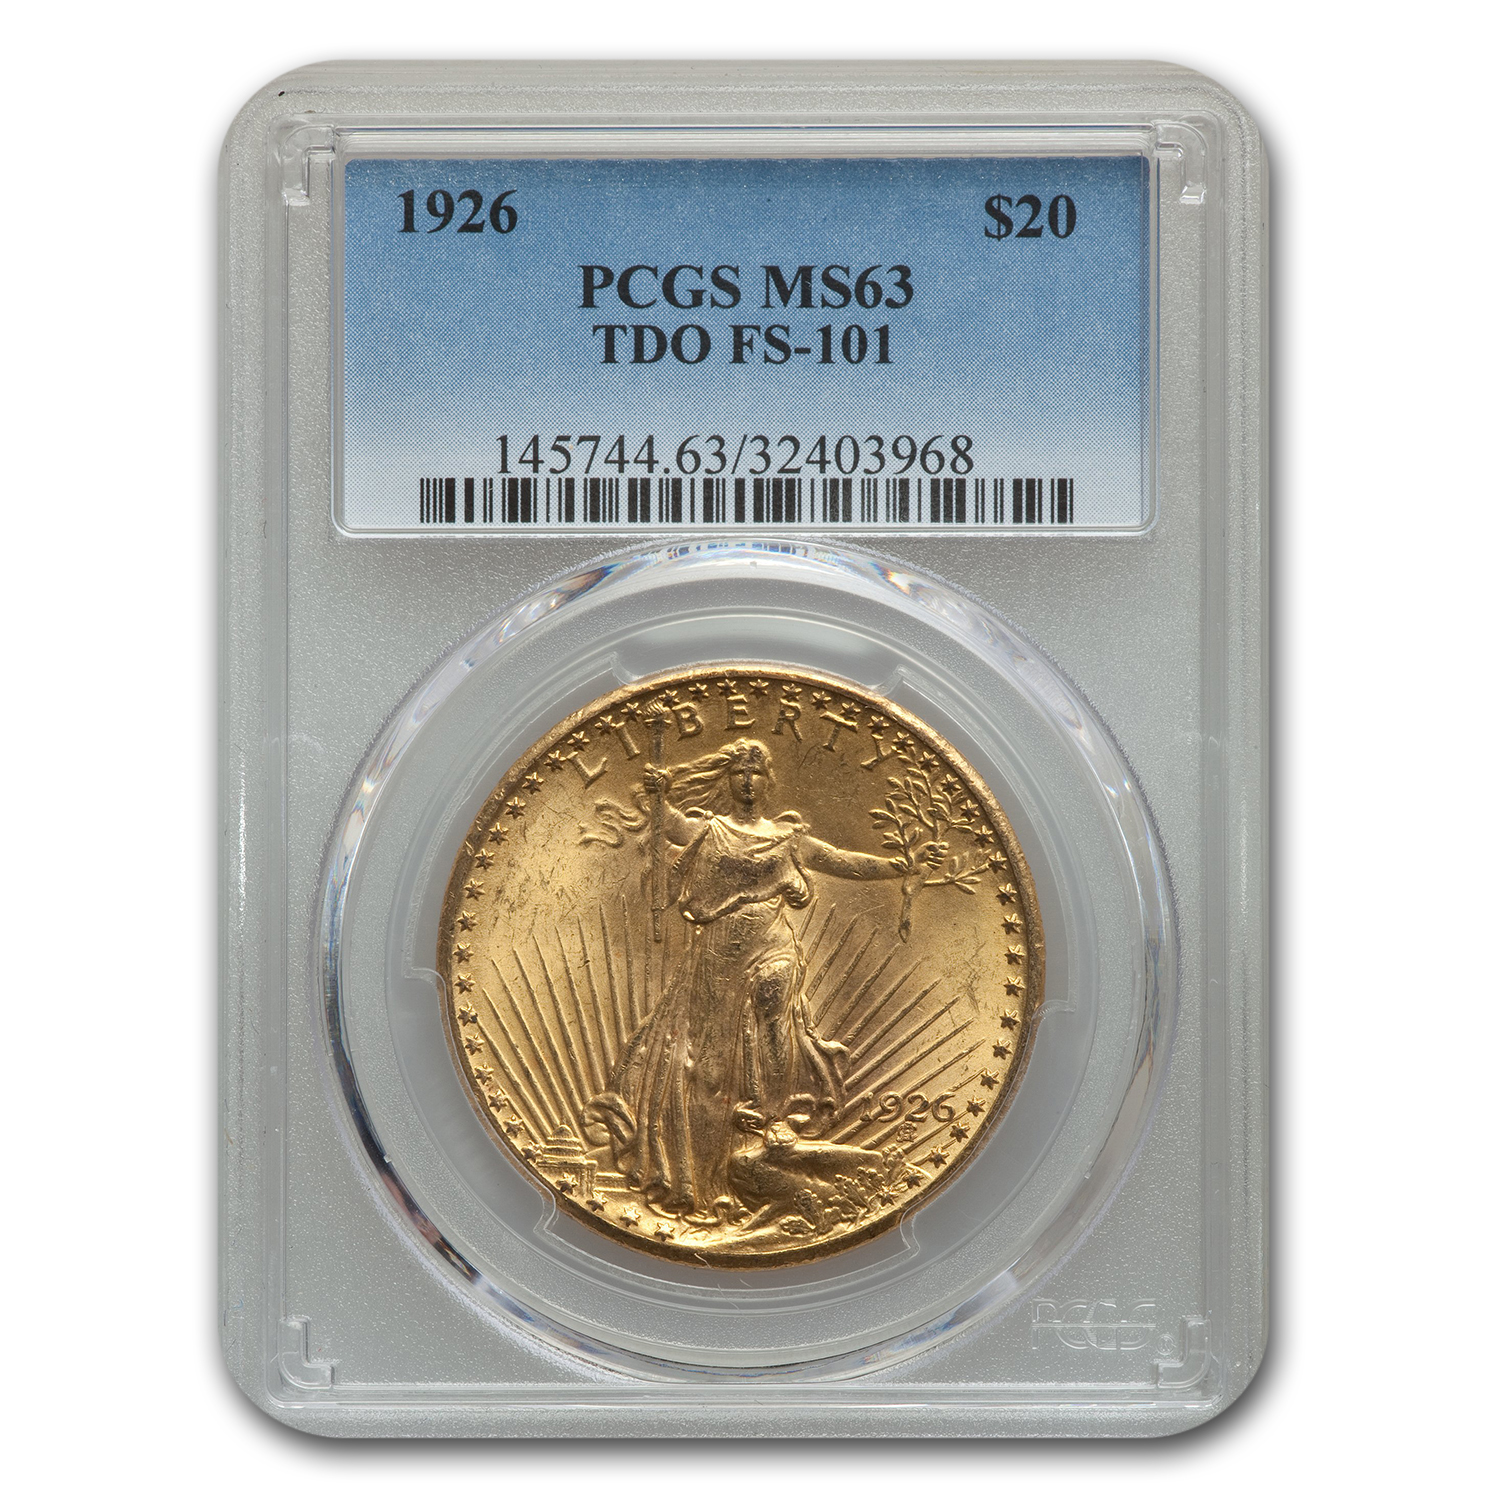 1926 $20 St. Gaudens Gold Double Eagle MS-63 (TDO, FS-101)